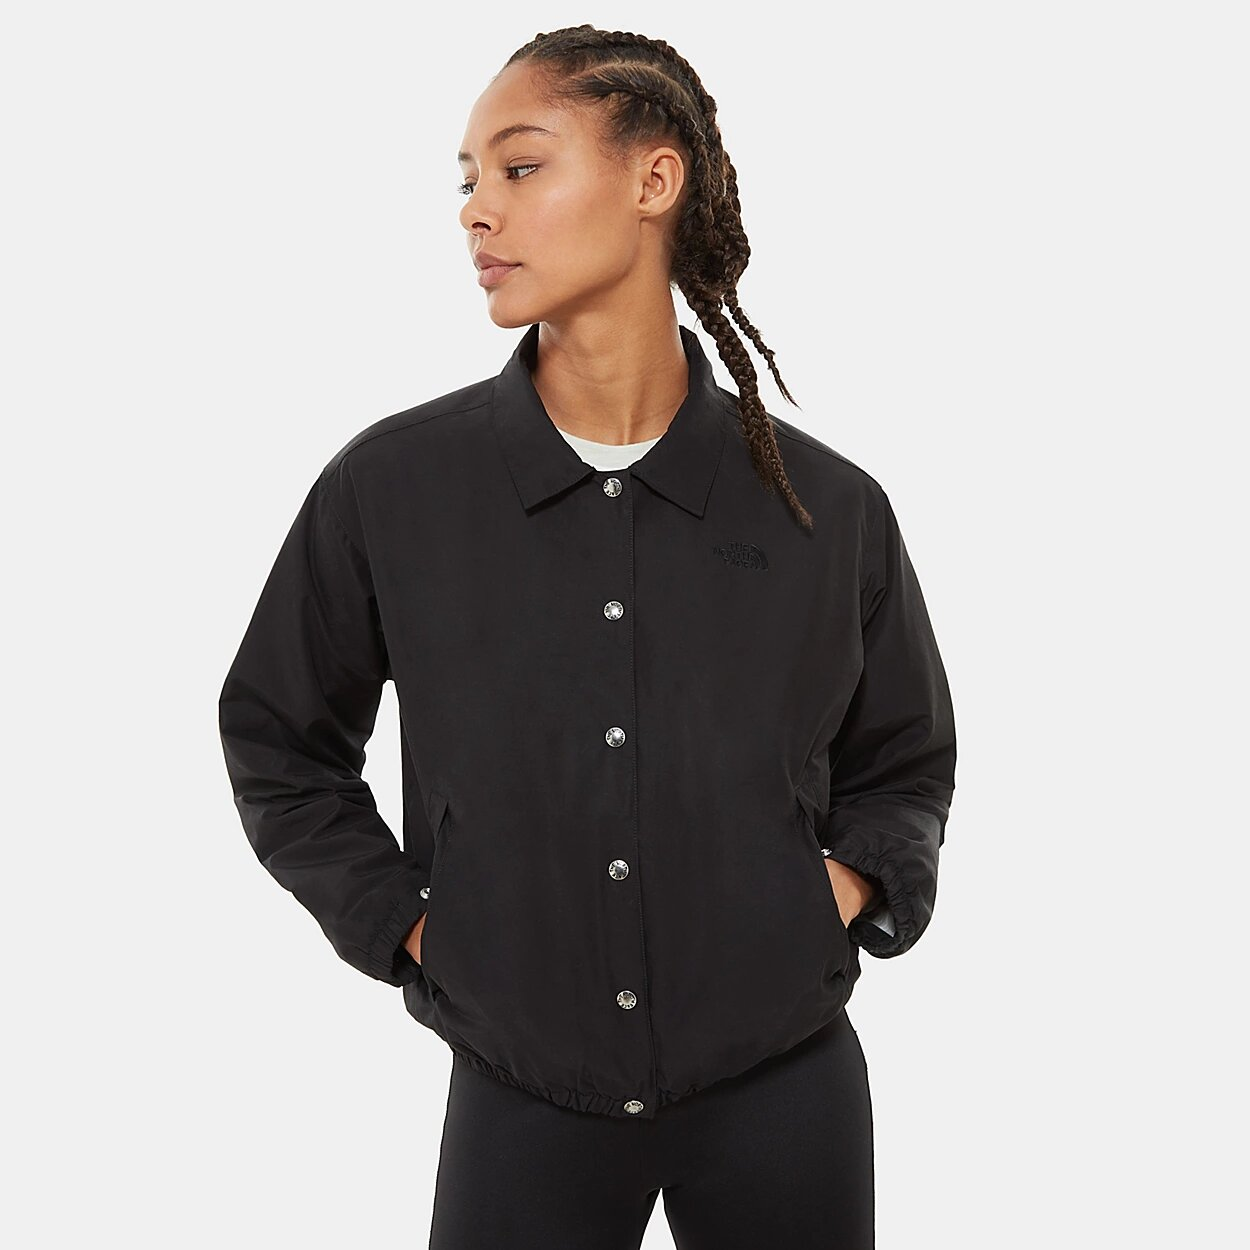 Women's Coach Jacket